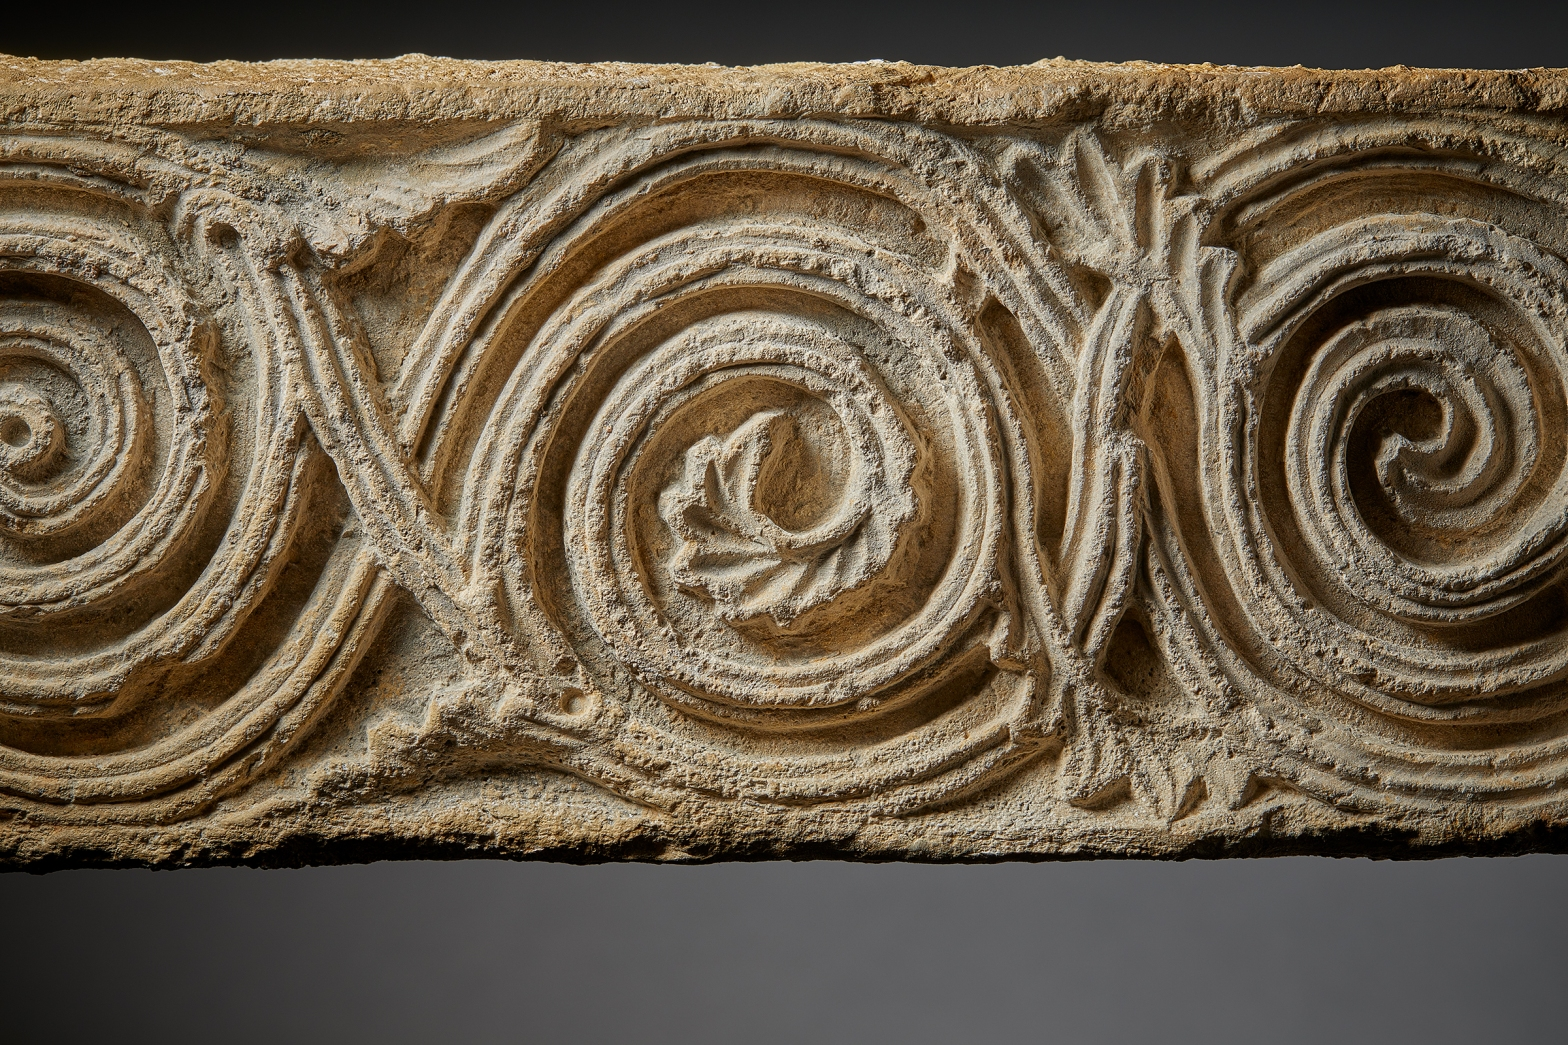 Medieval Stone Sculpture from the Van Horne Collection